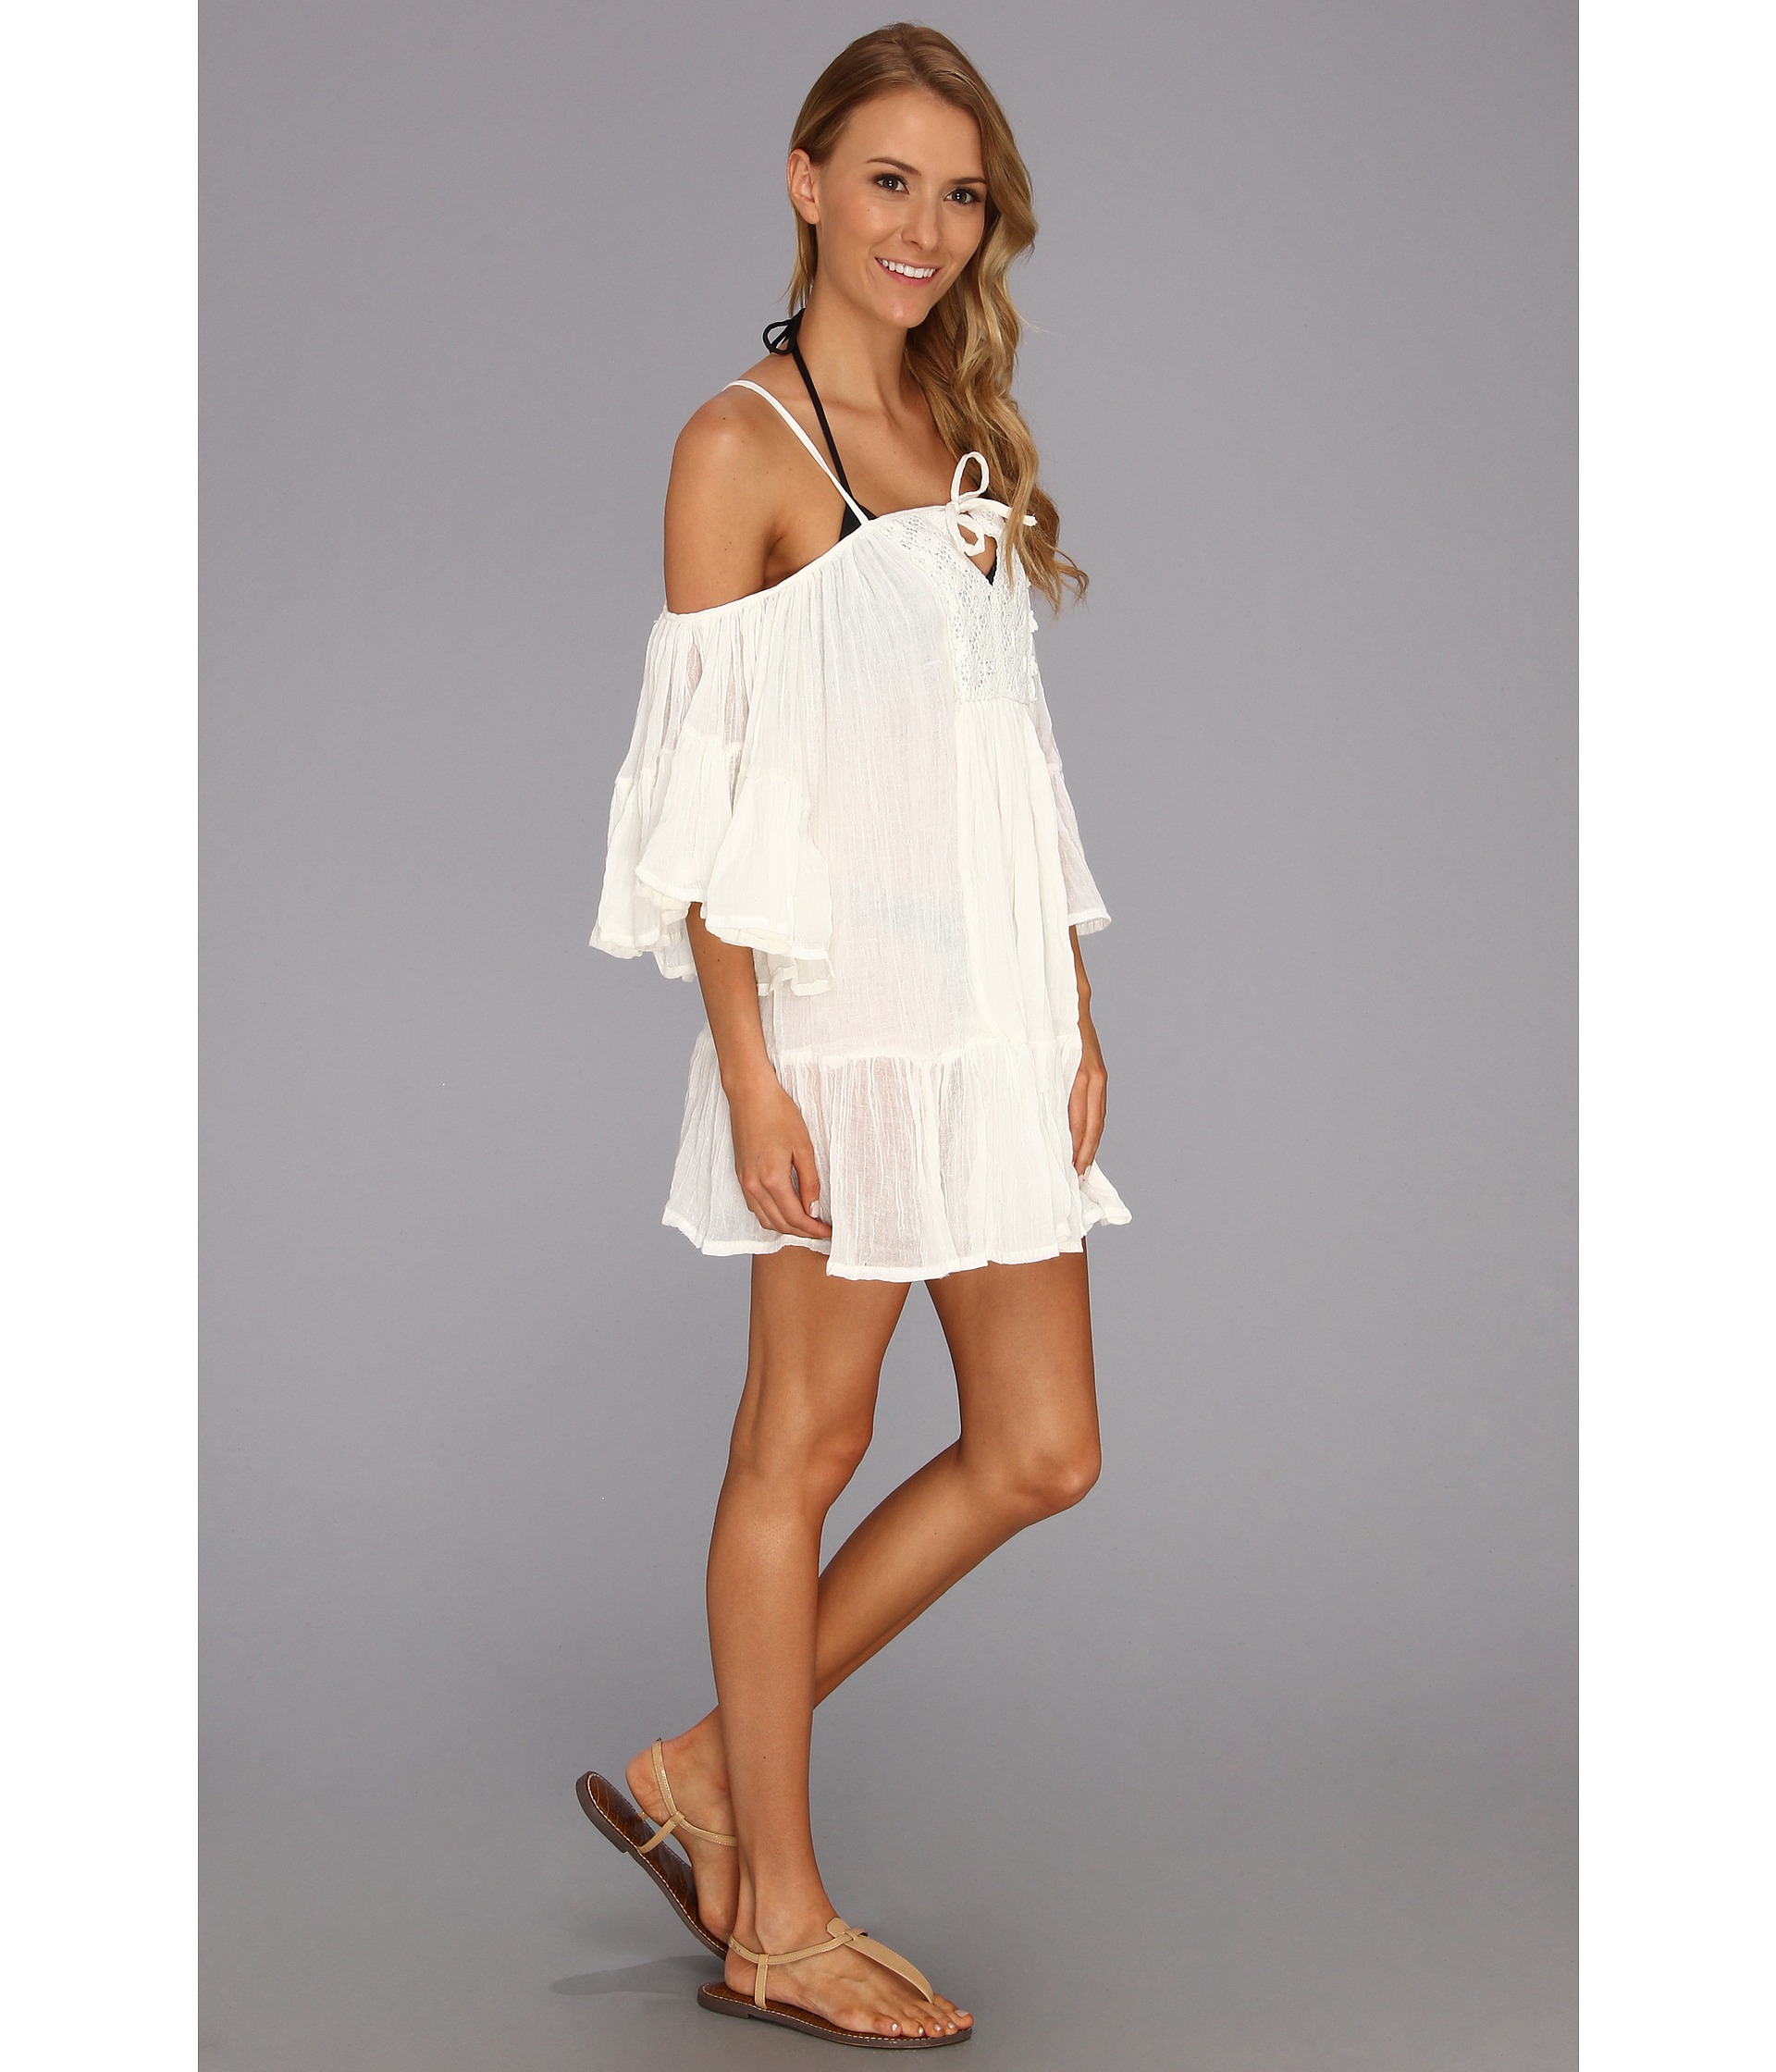 a77c01d2a6ab2 Roxy Beach Dreamer Cover Up in White - Lyst